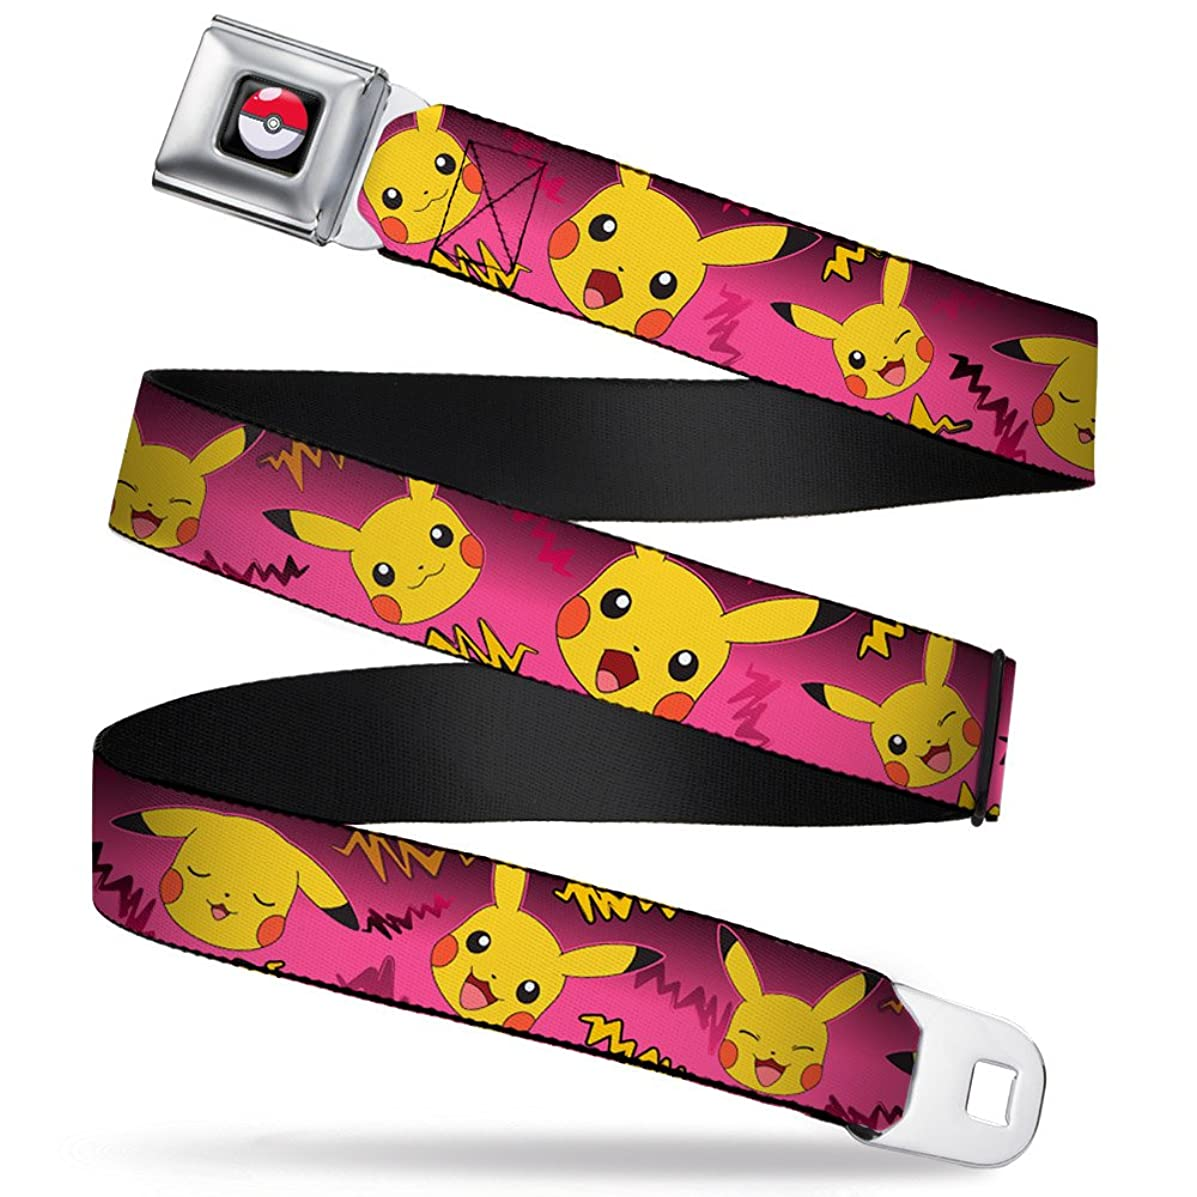 Buckle-Down Seatbelt Belt - Pikachu Expressions/Electric Waves Pinks/Yellows - 1.0